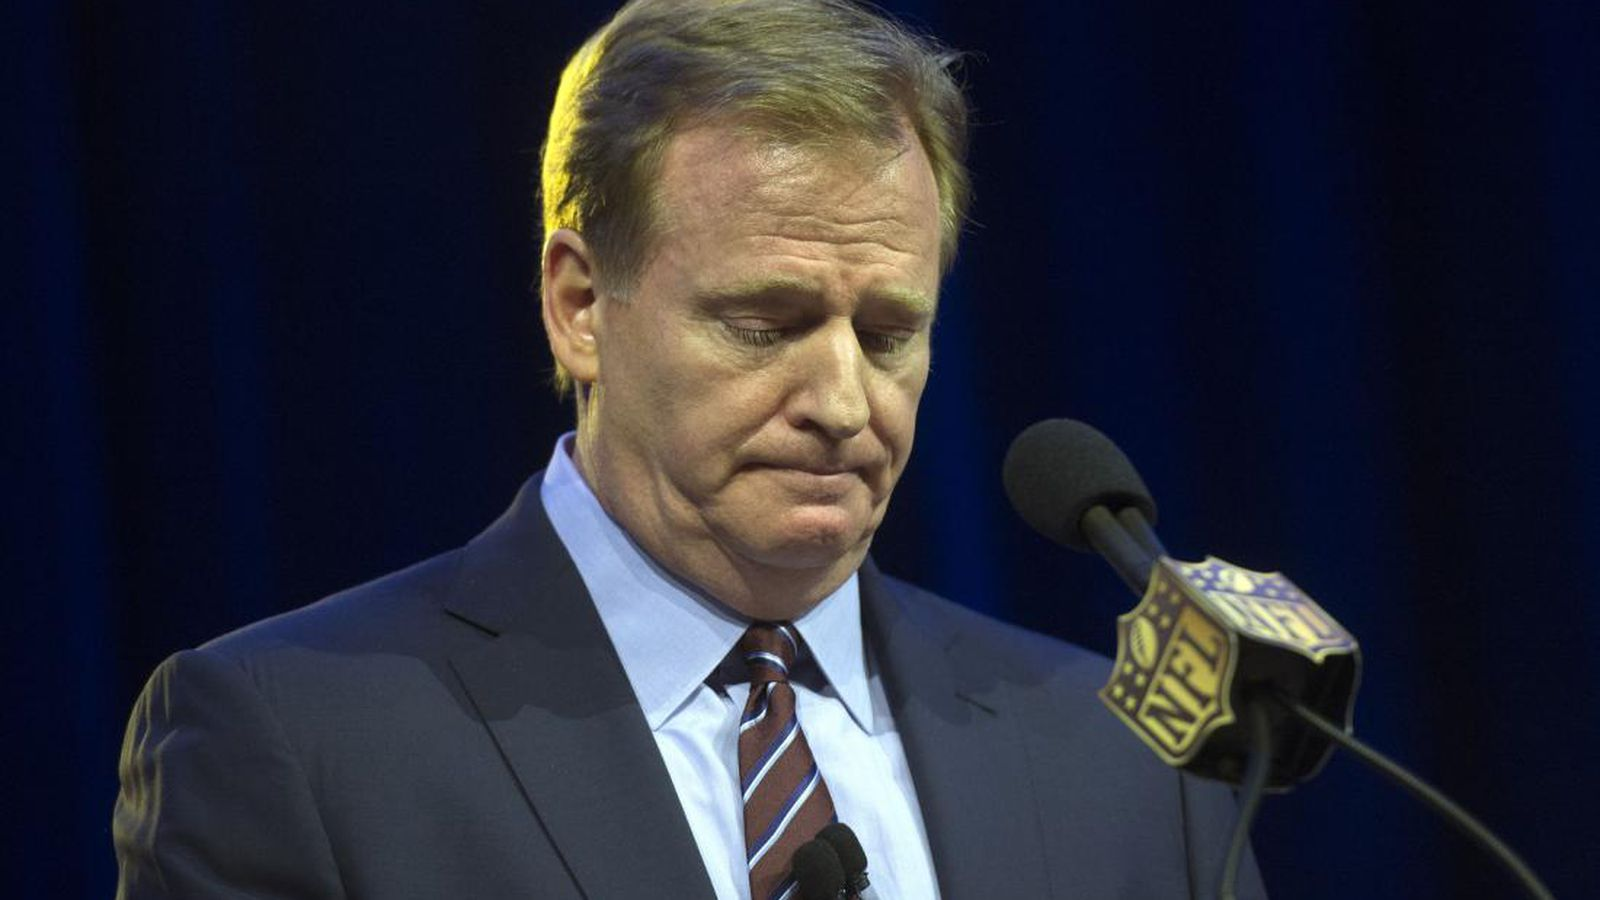 Nfl_players_fed_up_with_roger_goodell_strike_threat_real.1500744583